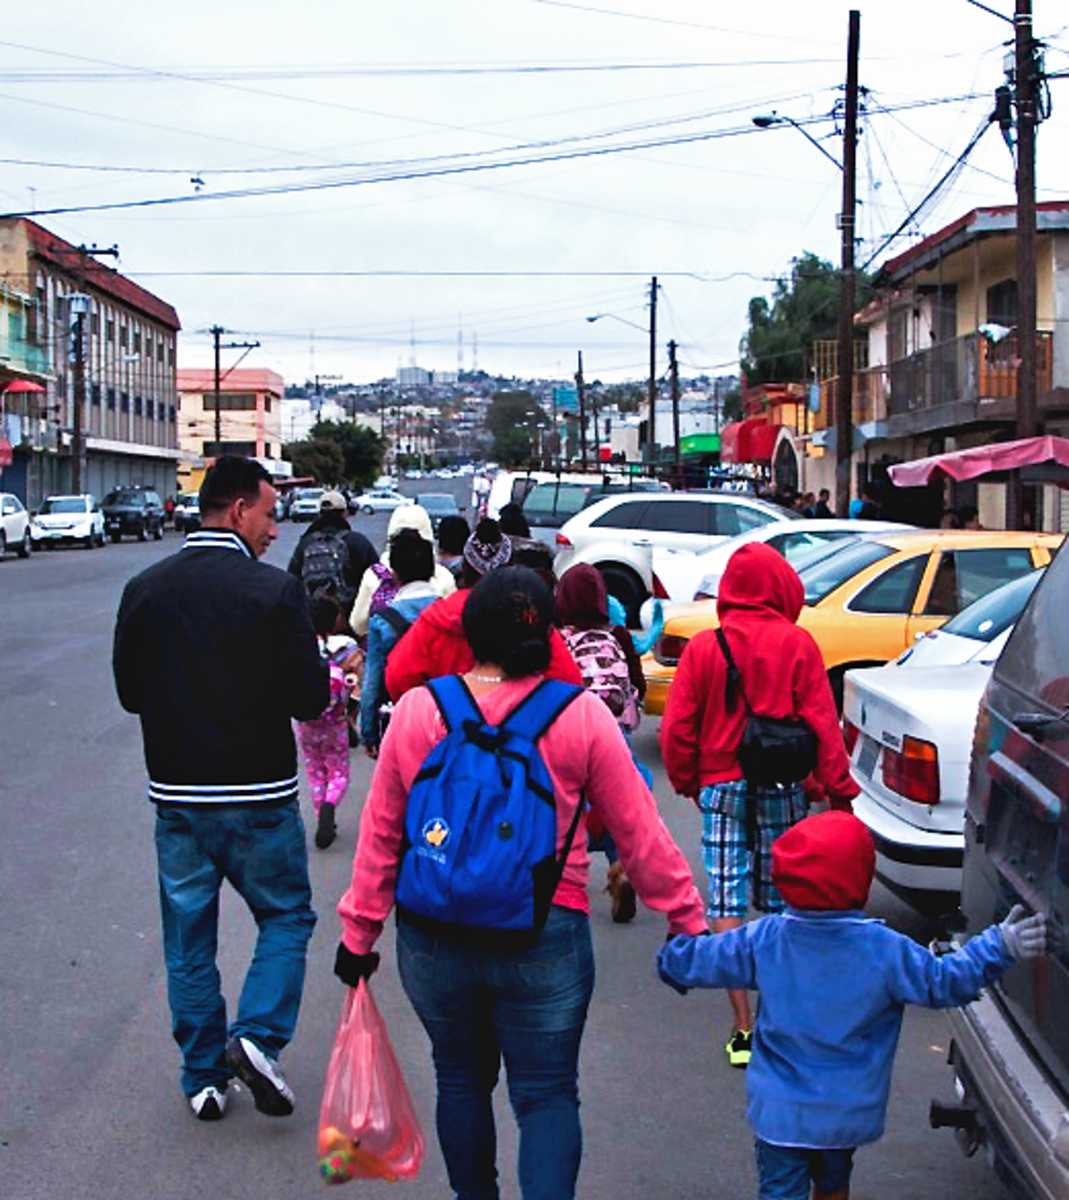 Marisol's family joins a group of others intending to cross the border.